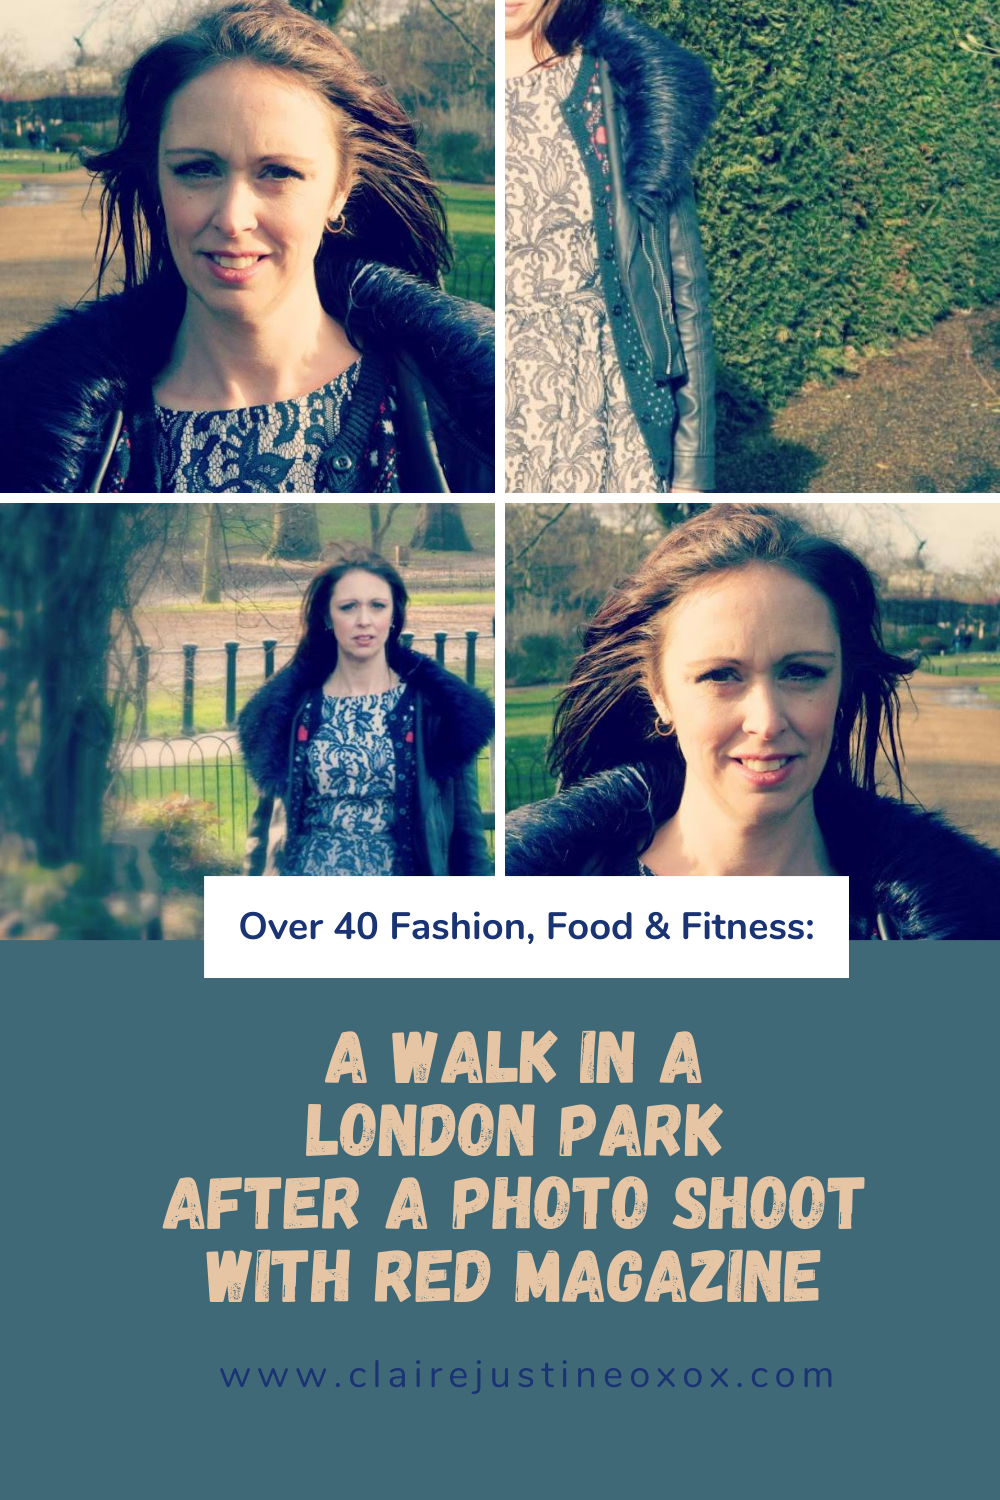 A Walk In A London Park After A Photo Shoot With Red Magazine.